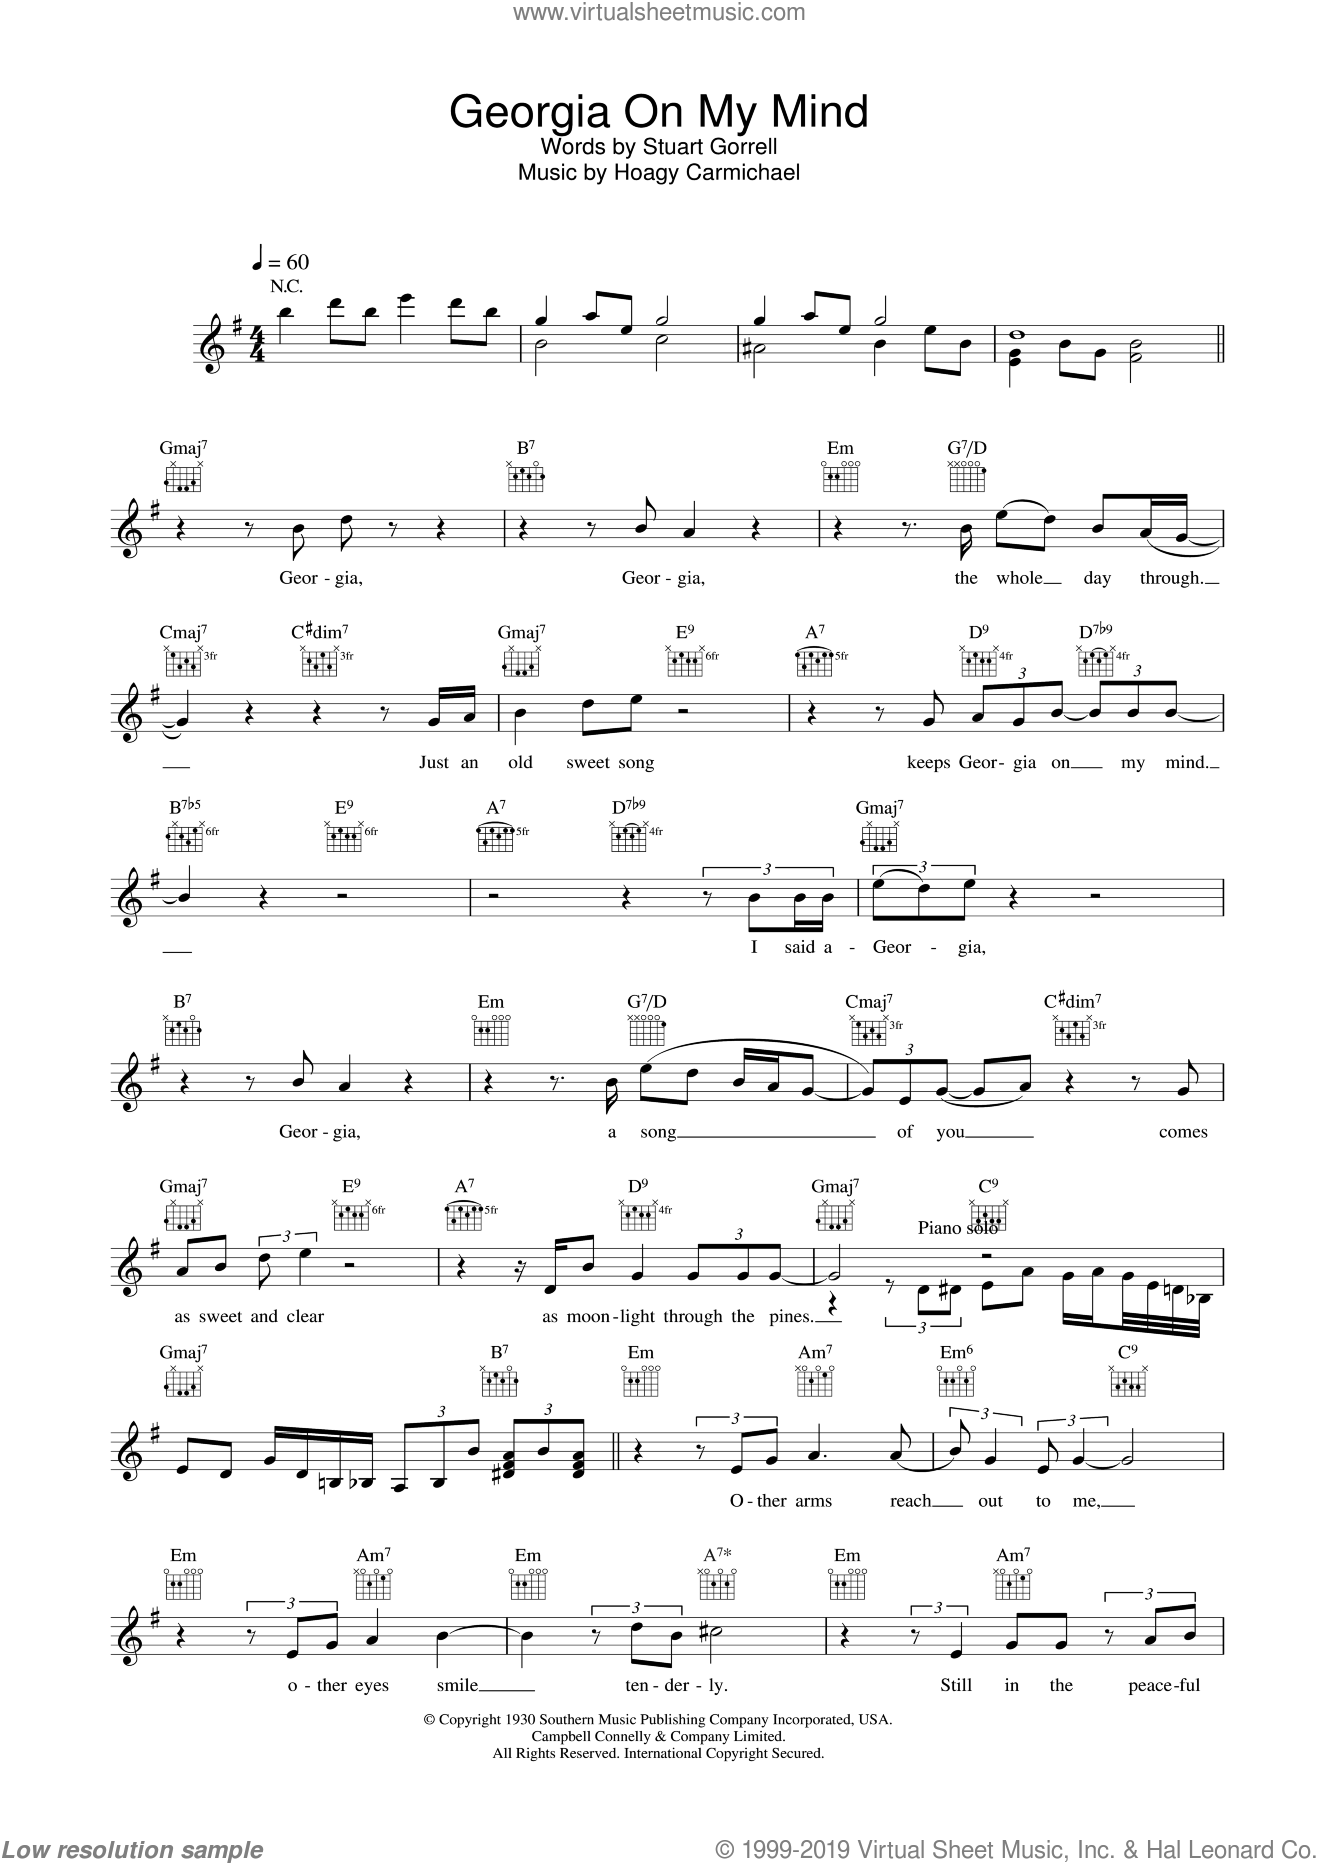 Georgia On My Mind sheet music for voice and other instruments (fake book) by Stuart Gorrell